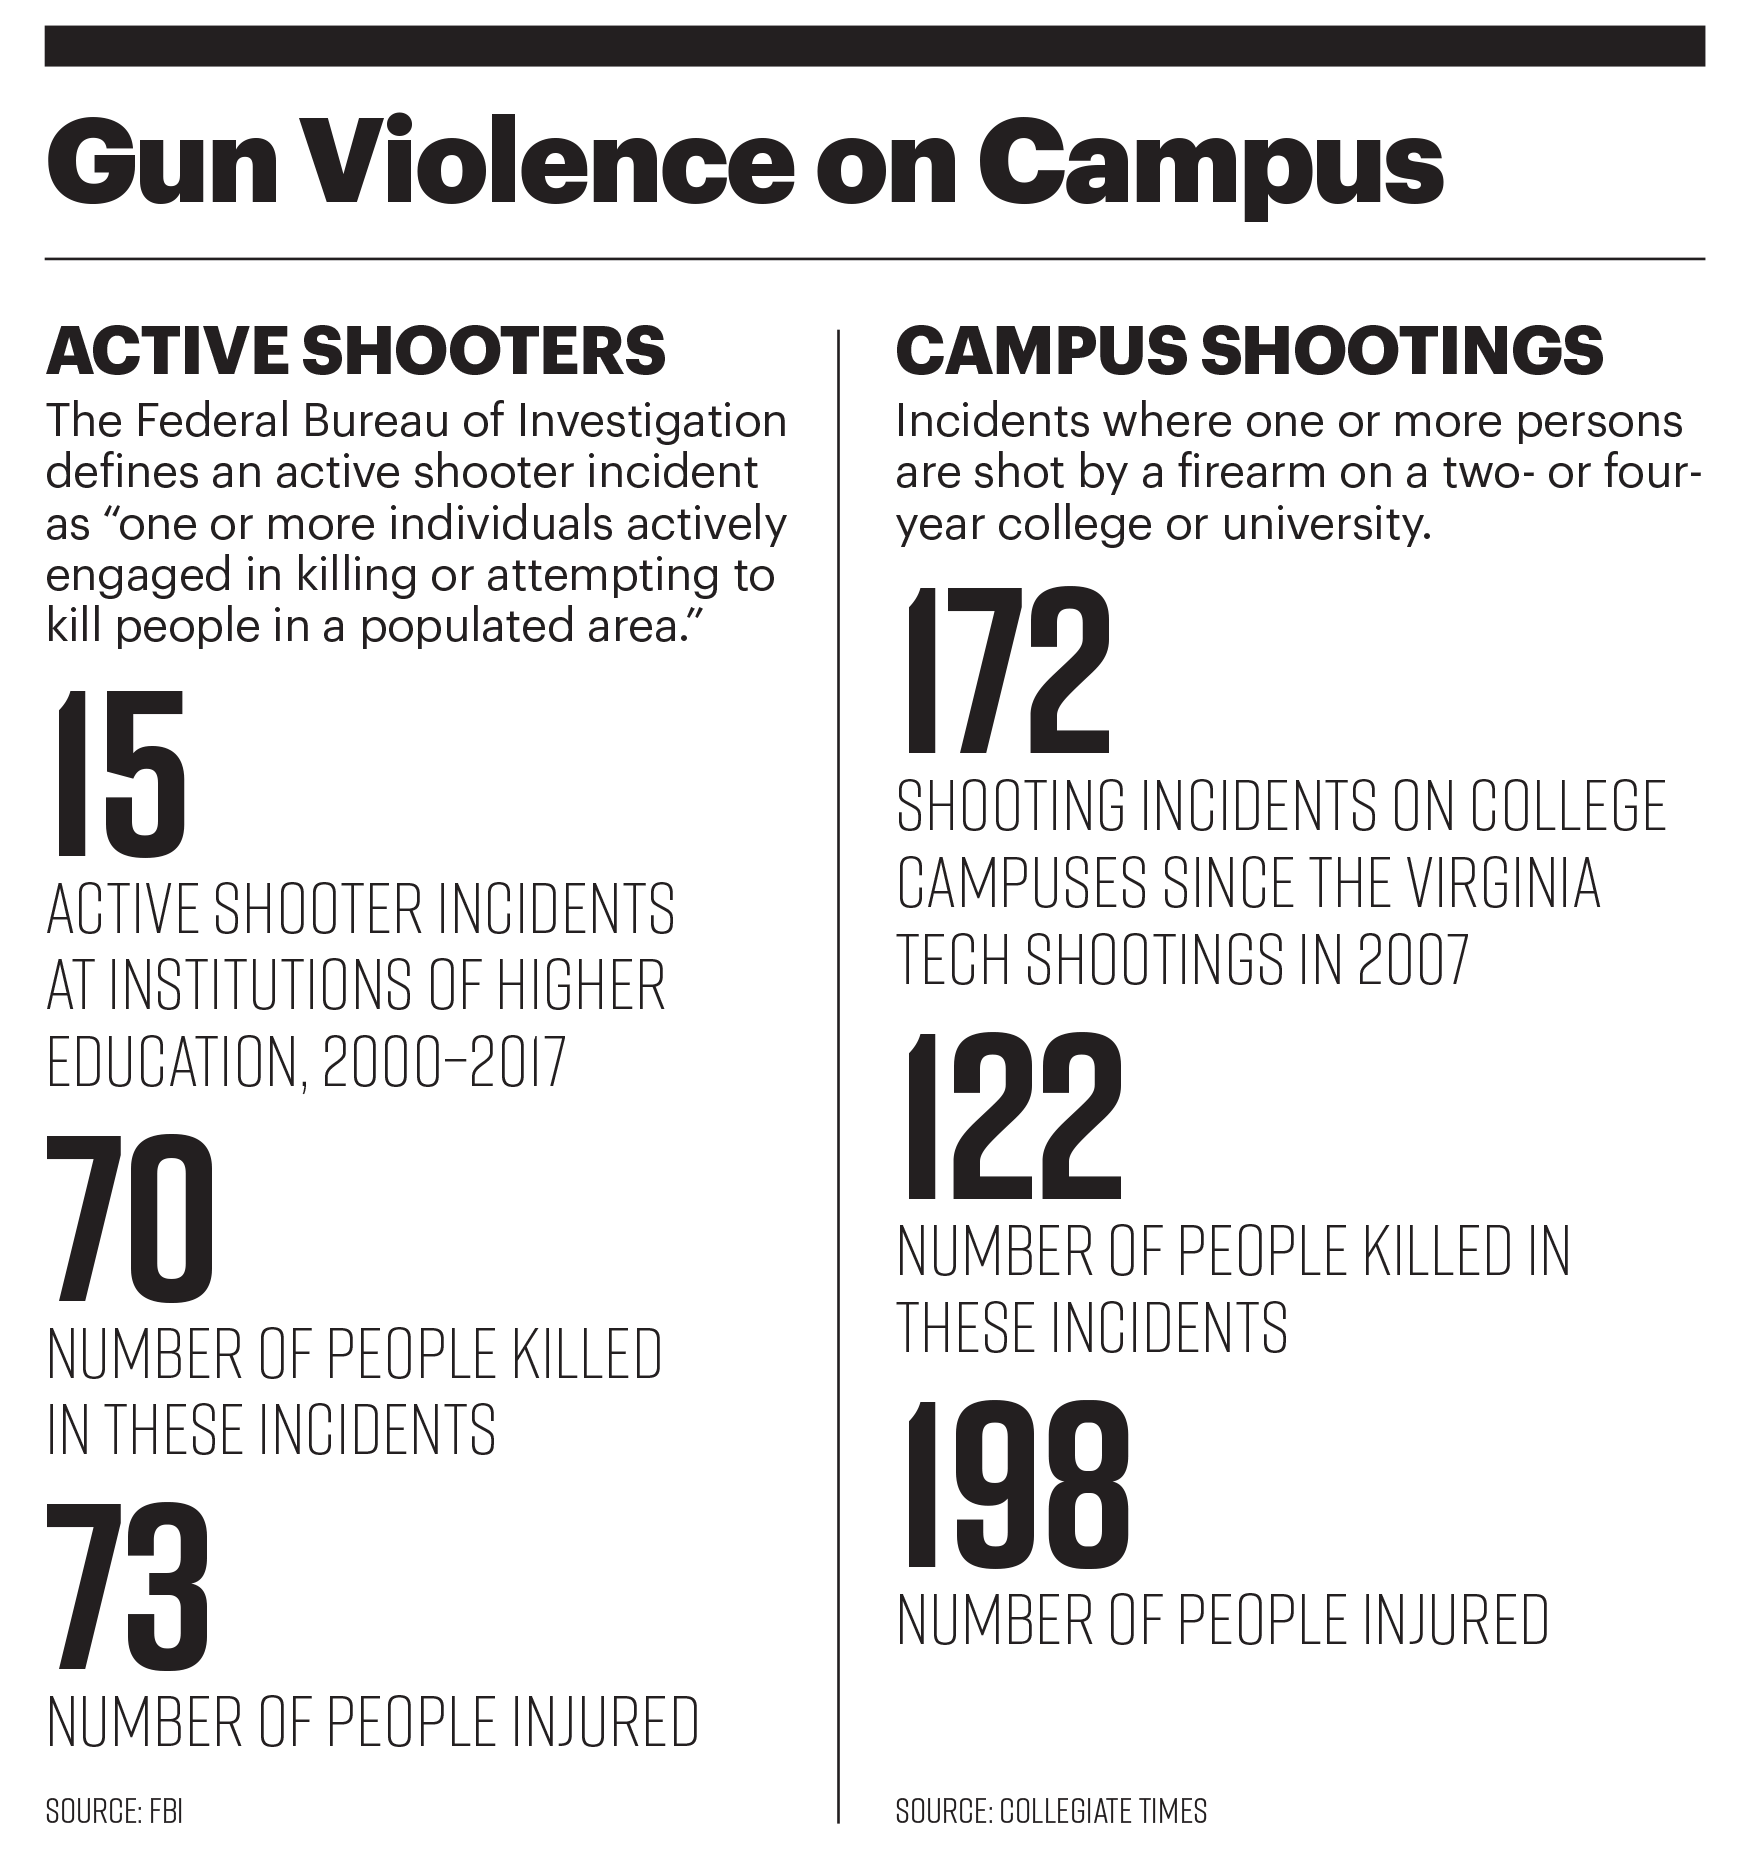 Gun Violence on Campus stats